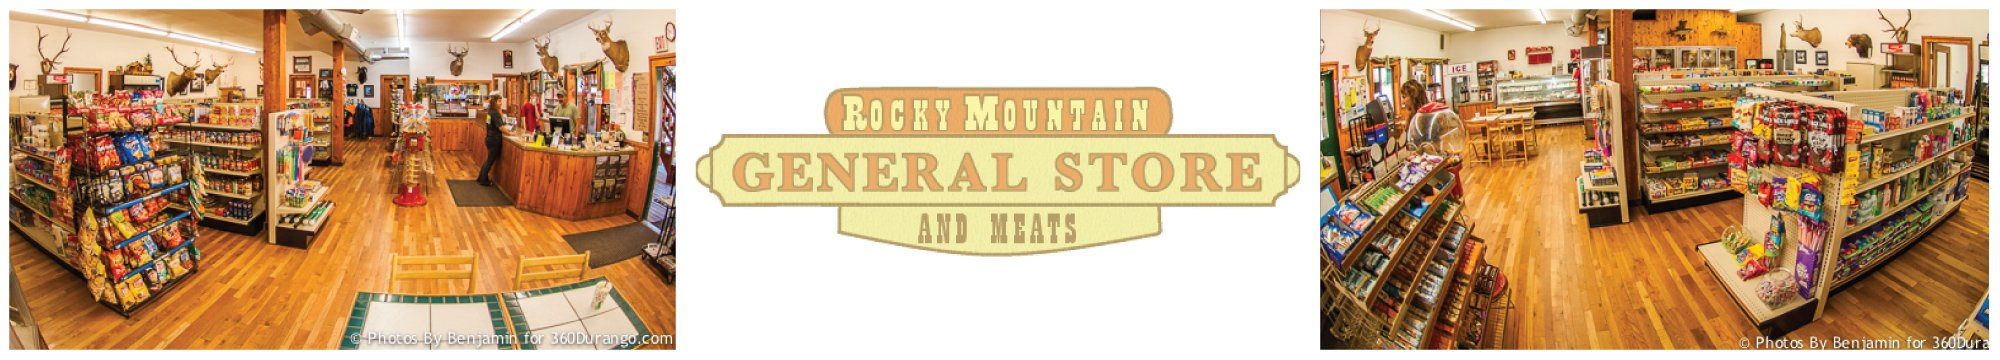 Rocky Mountain General Store